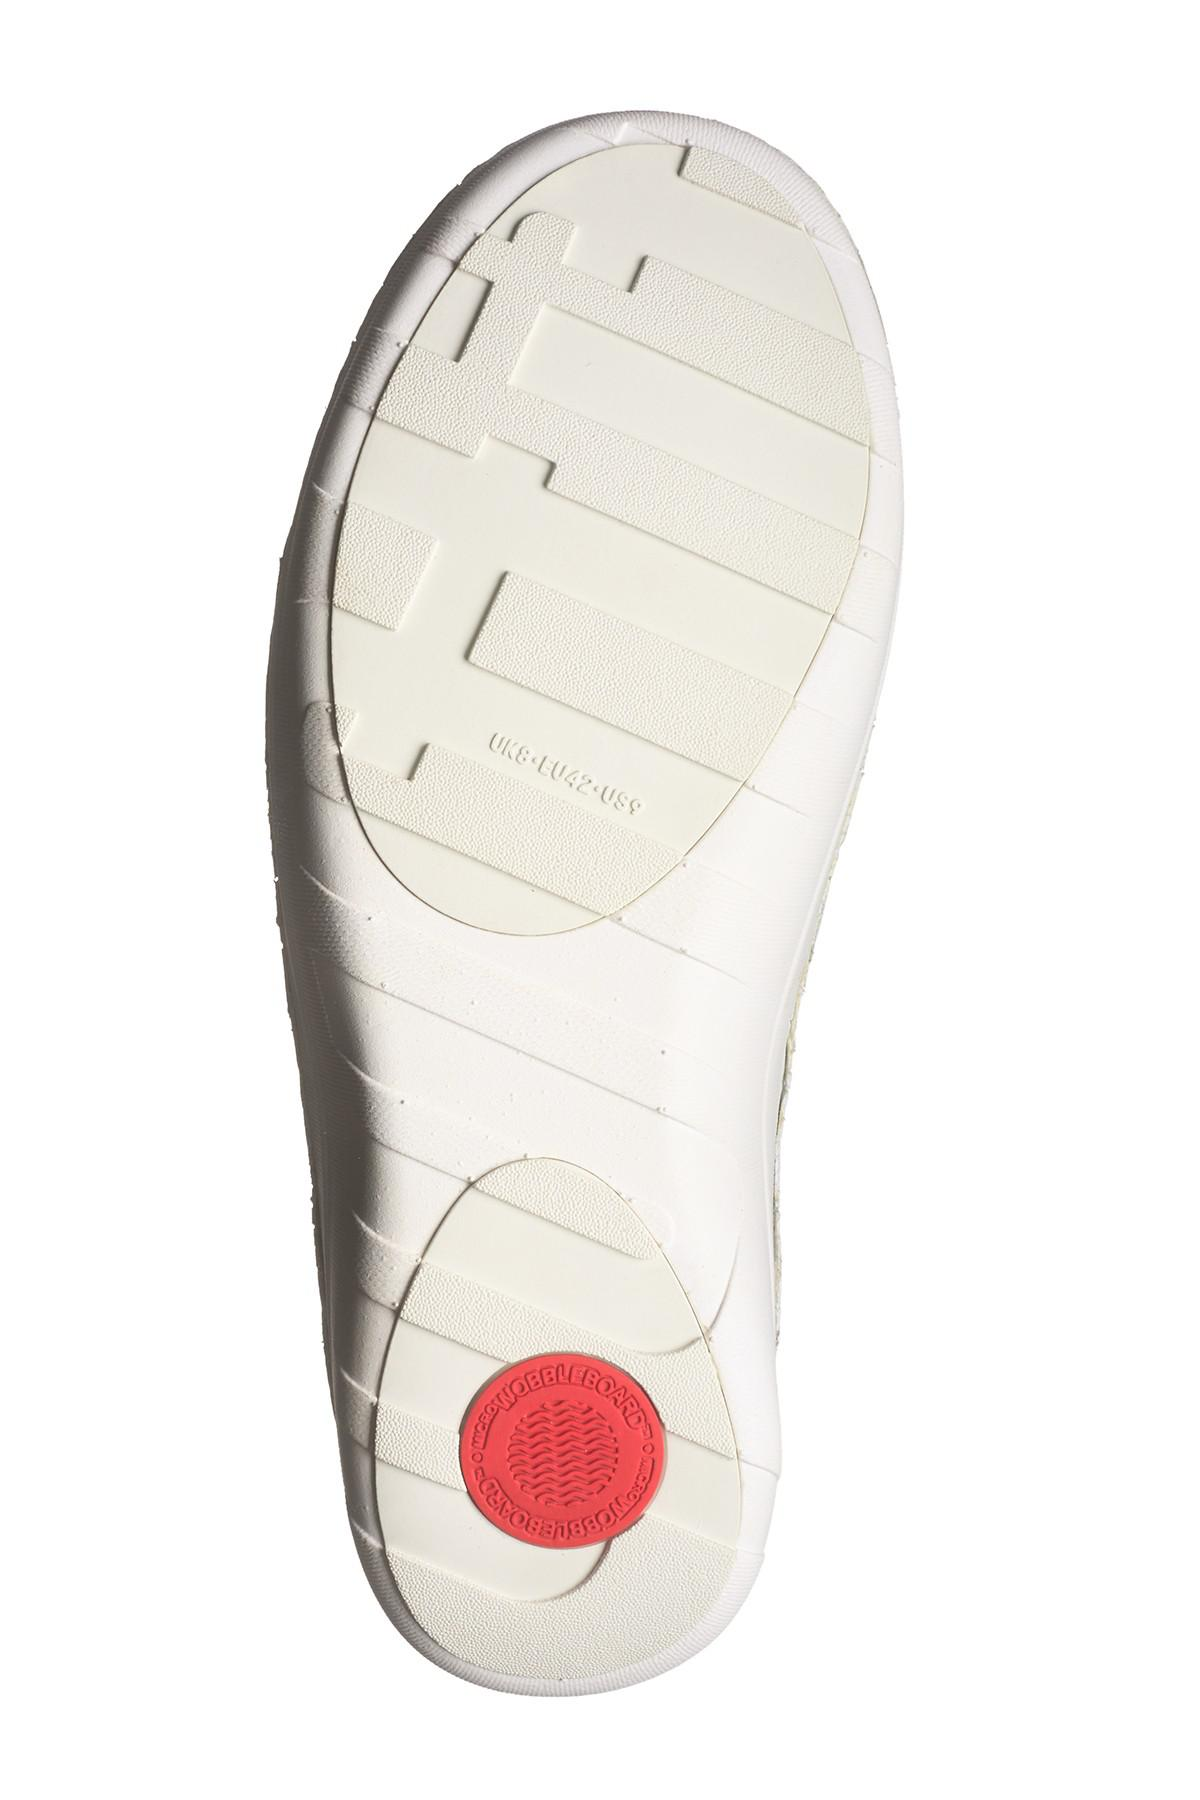 cd4cea46c23 Fitflop - White Perforated Leather Superloafer for Men - Lyst. View  fullscreen